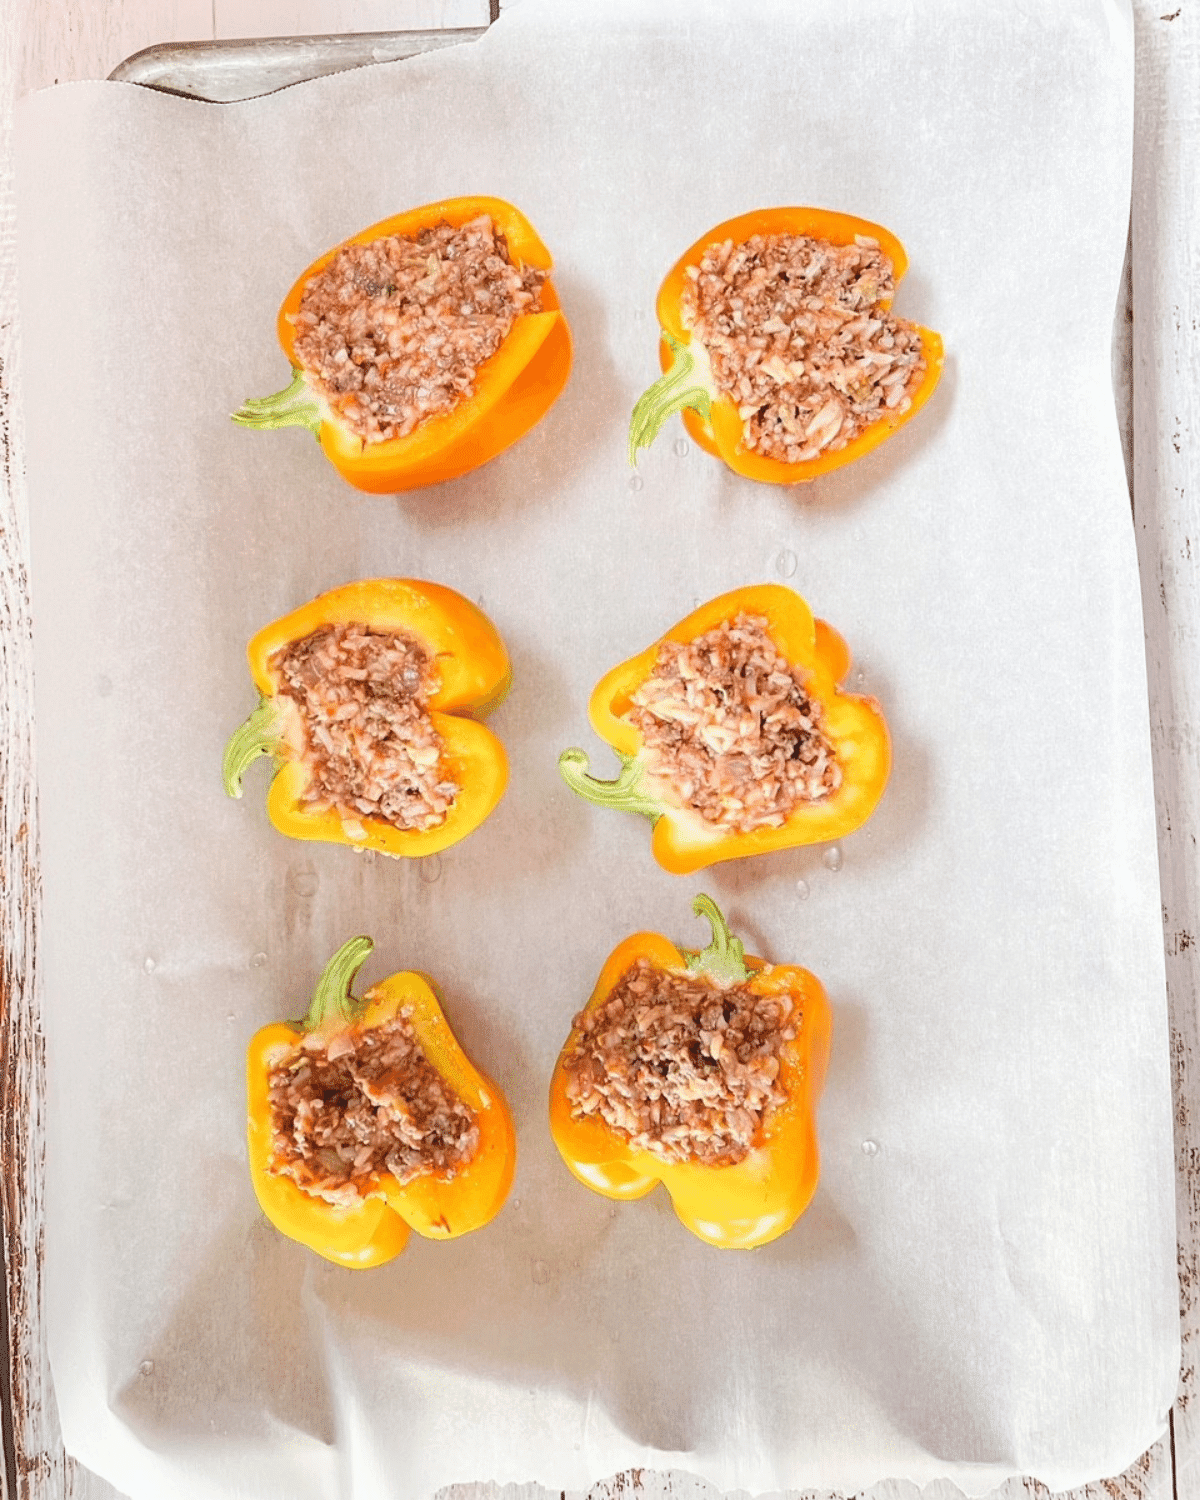 Sweet bell peppers stuffed with meat mixture